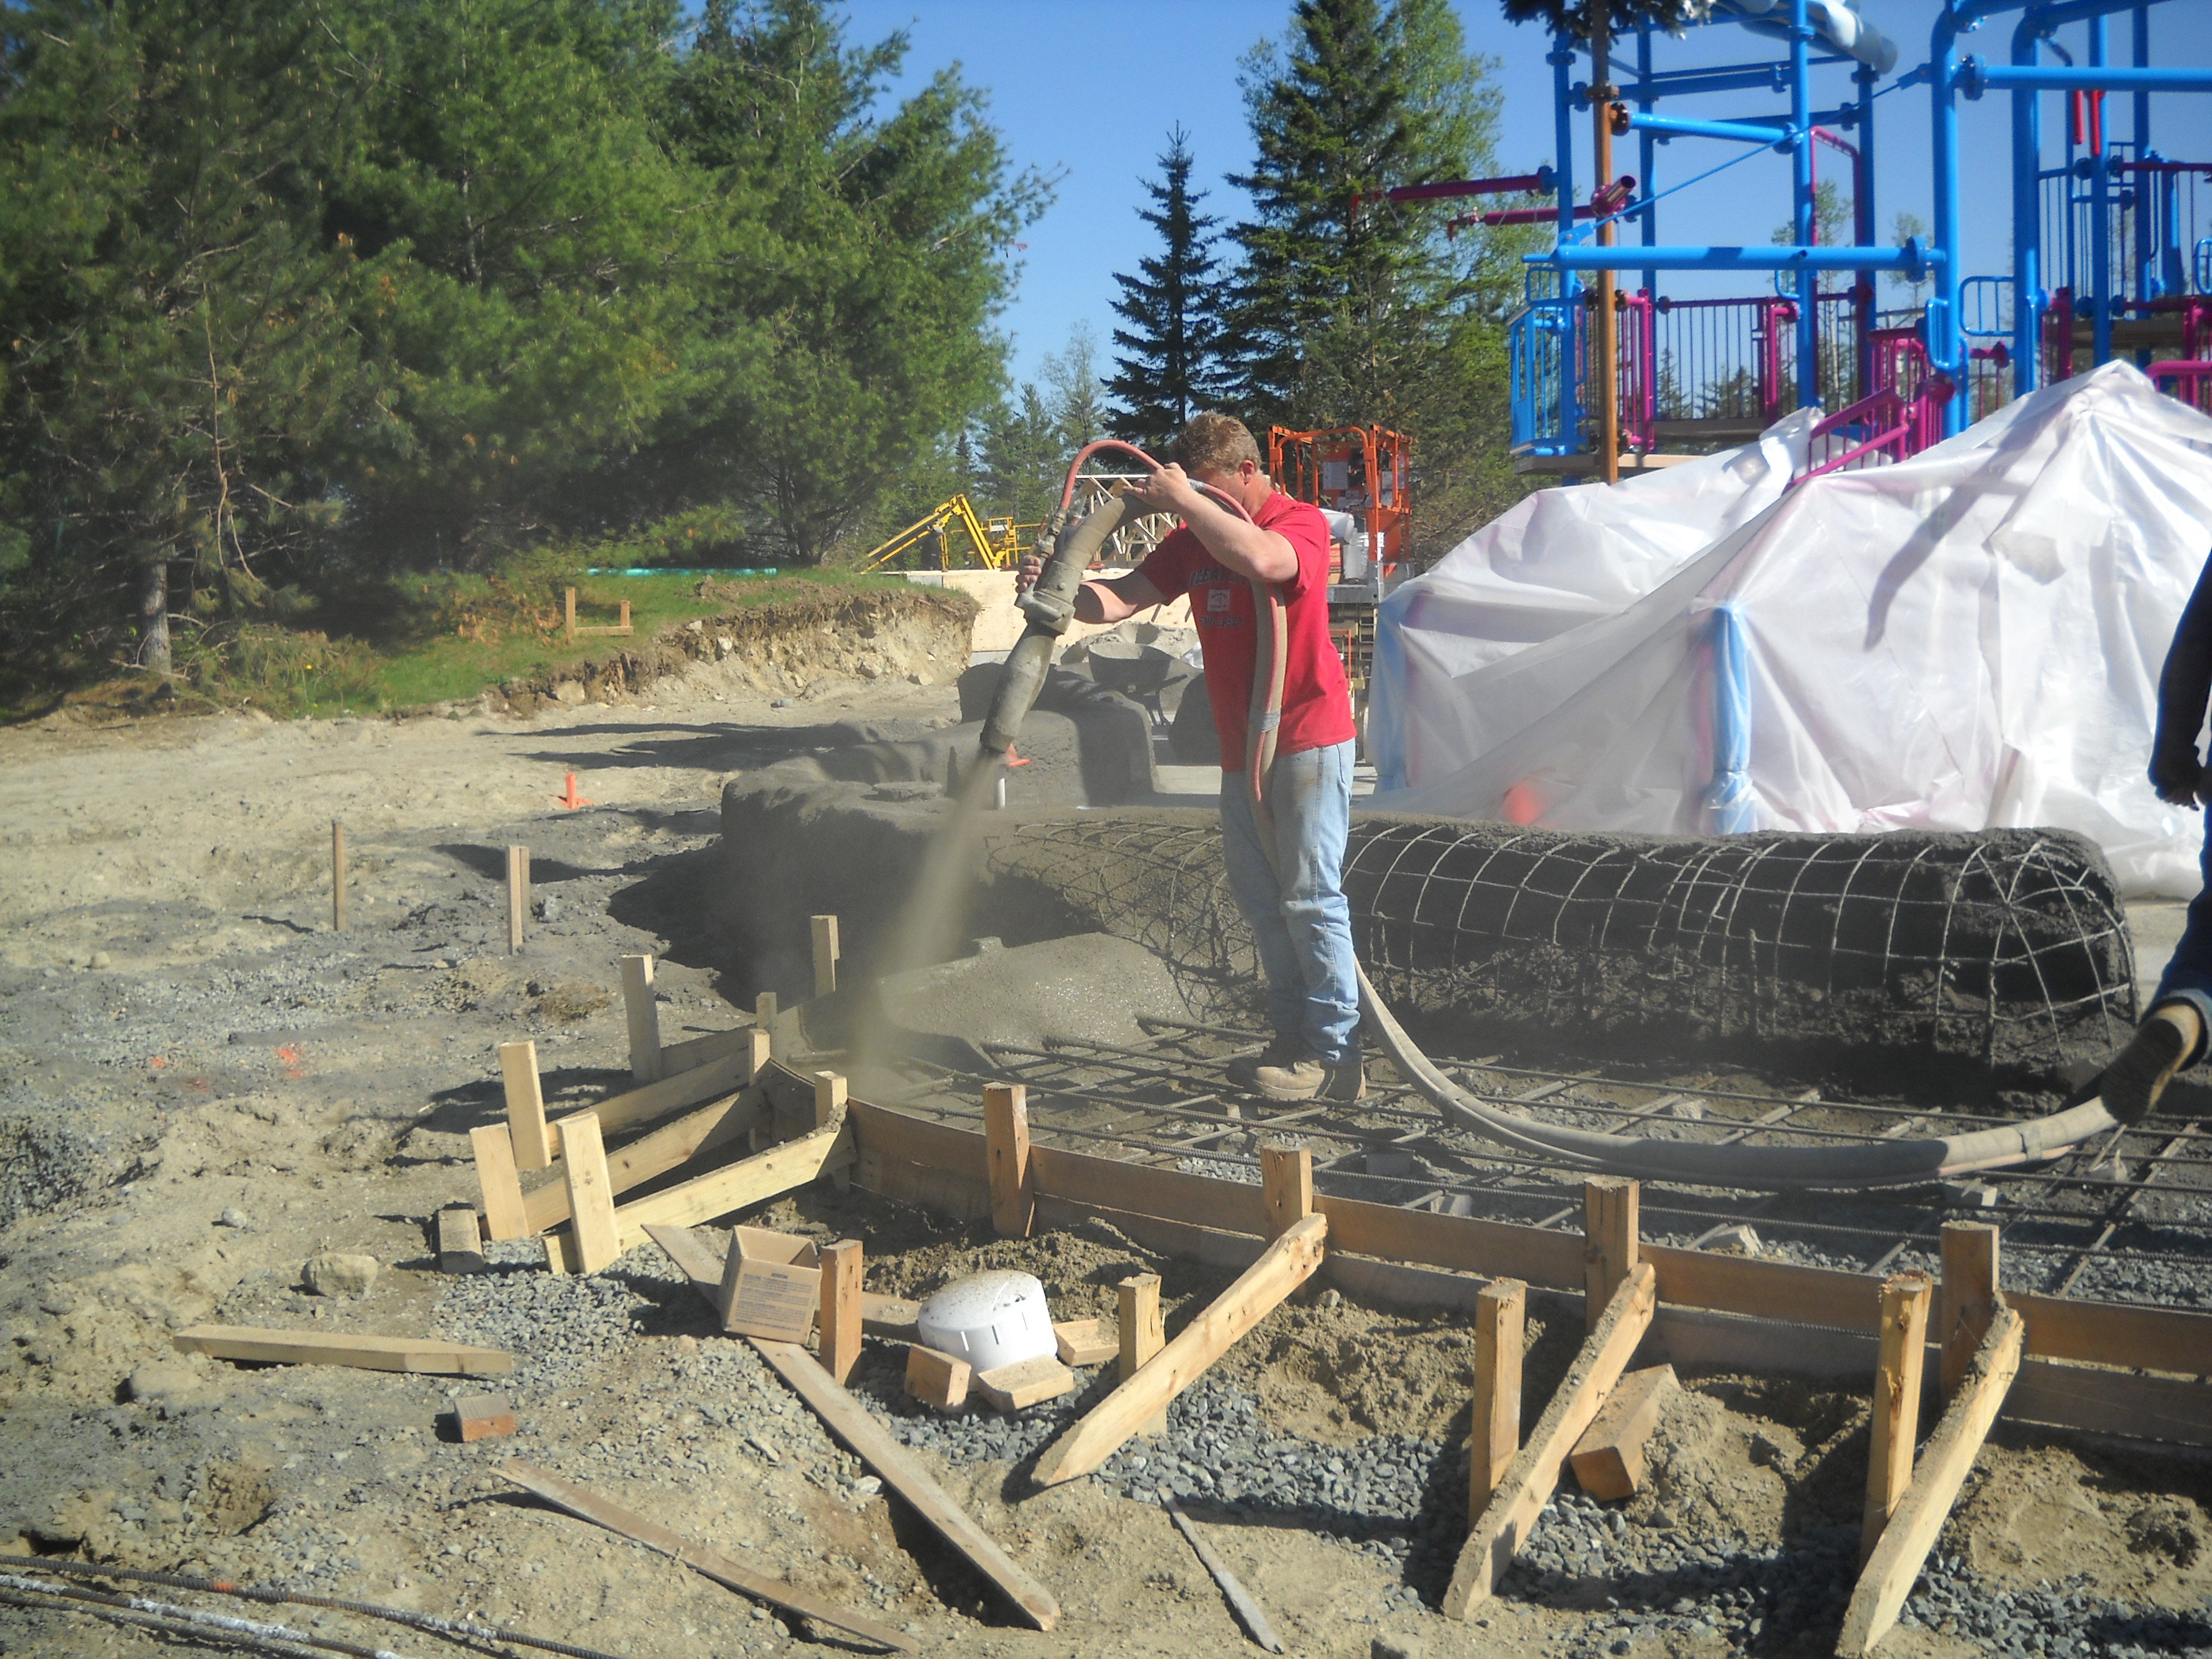 Gunite Construction at Santa's Village